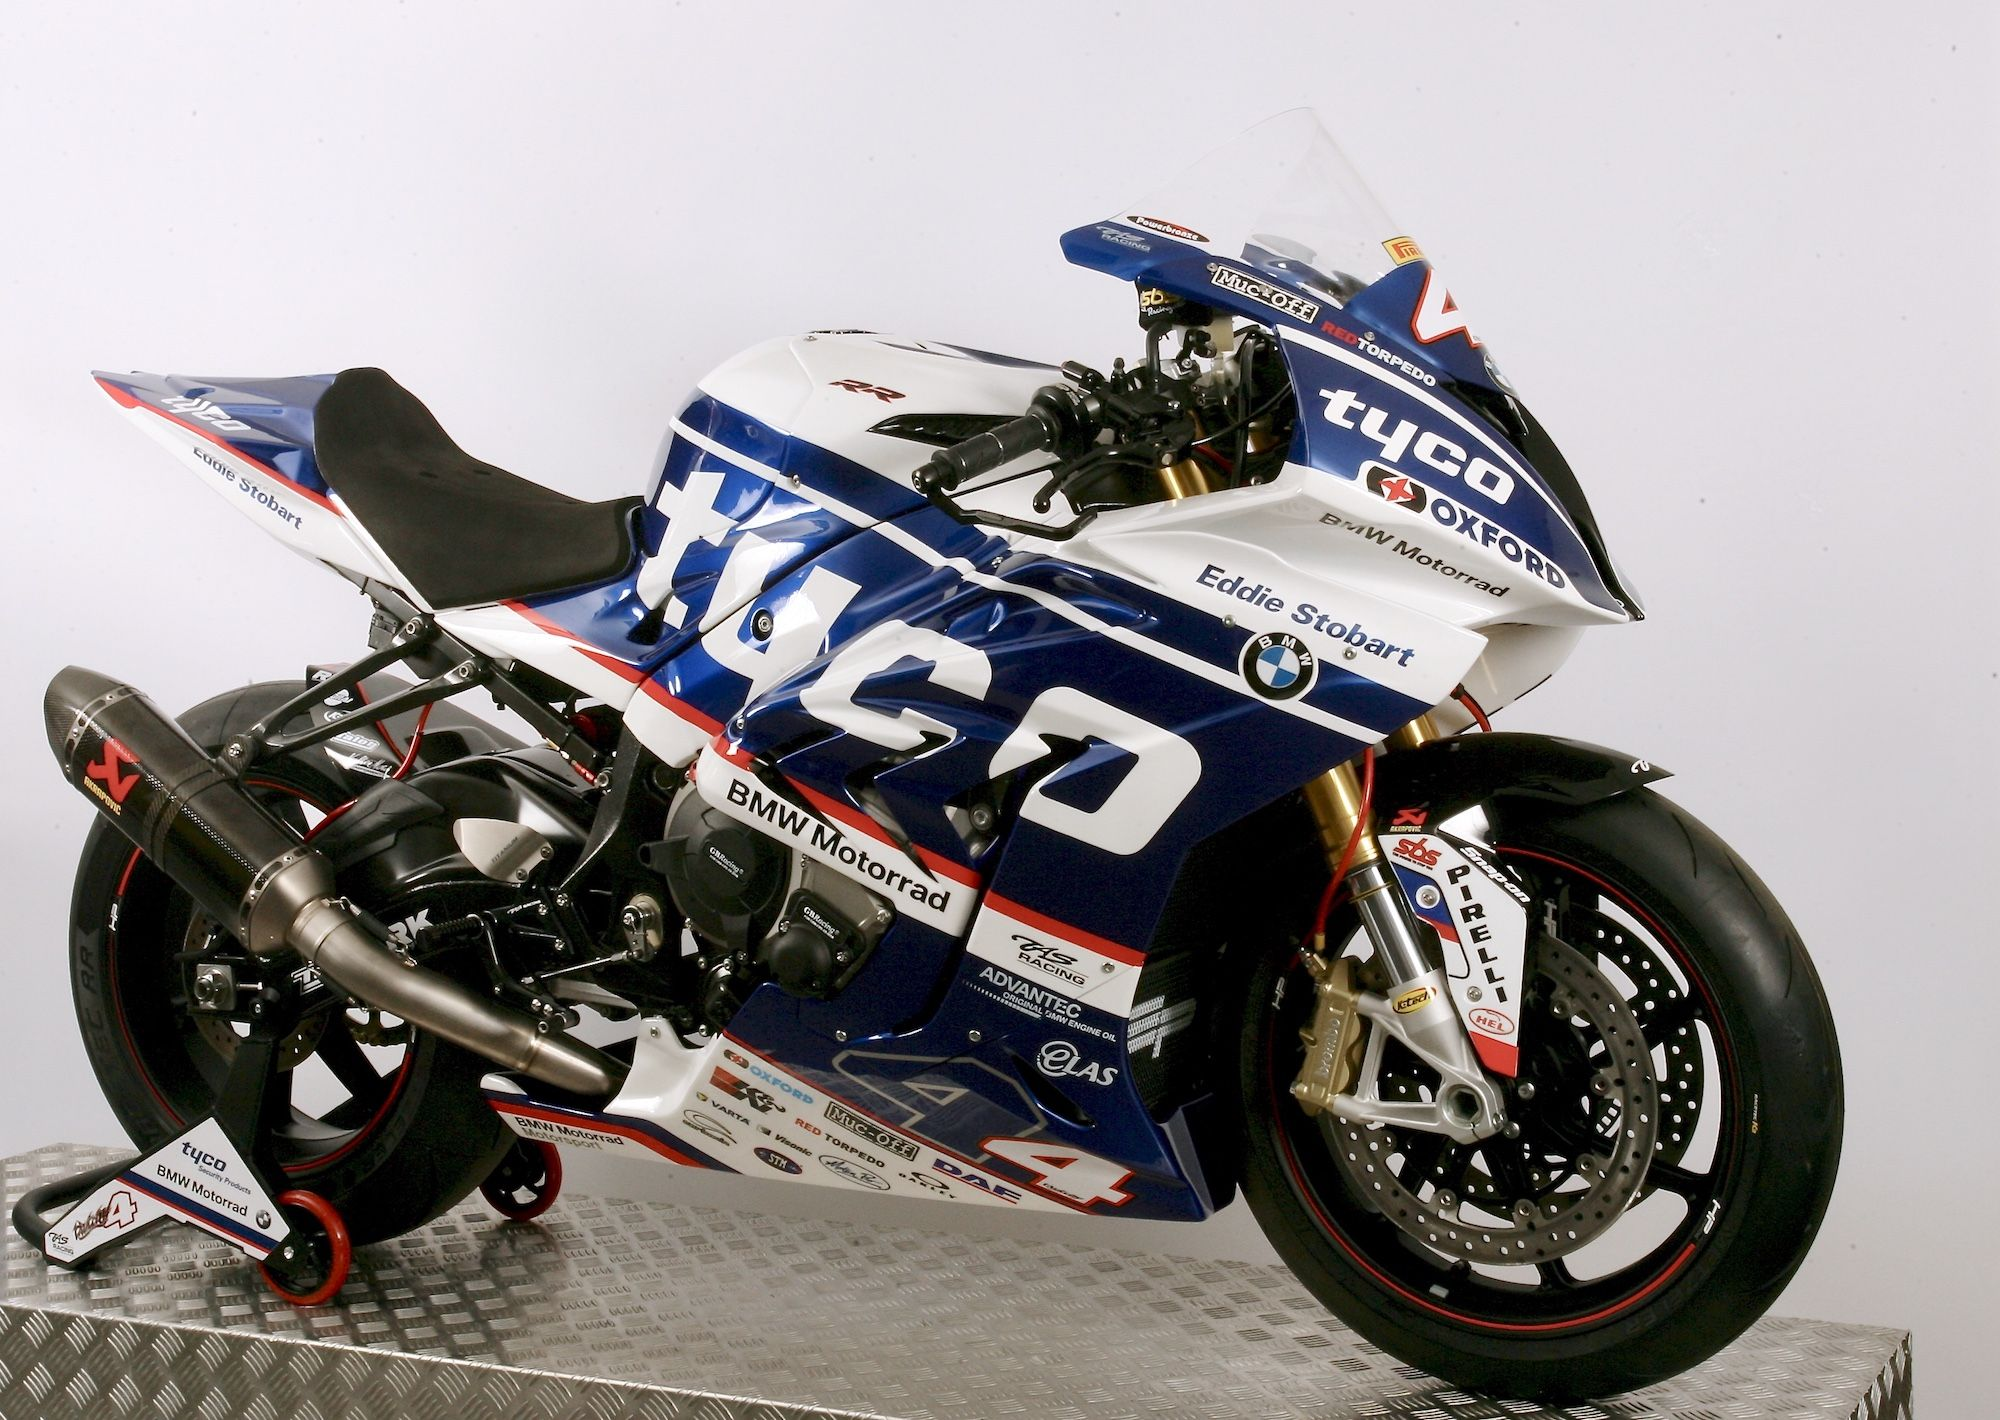 Pin by Marty Ferguson on Two wheeled eye candy | Bmw s1000rr